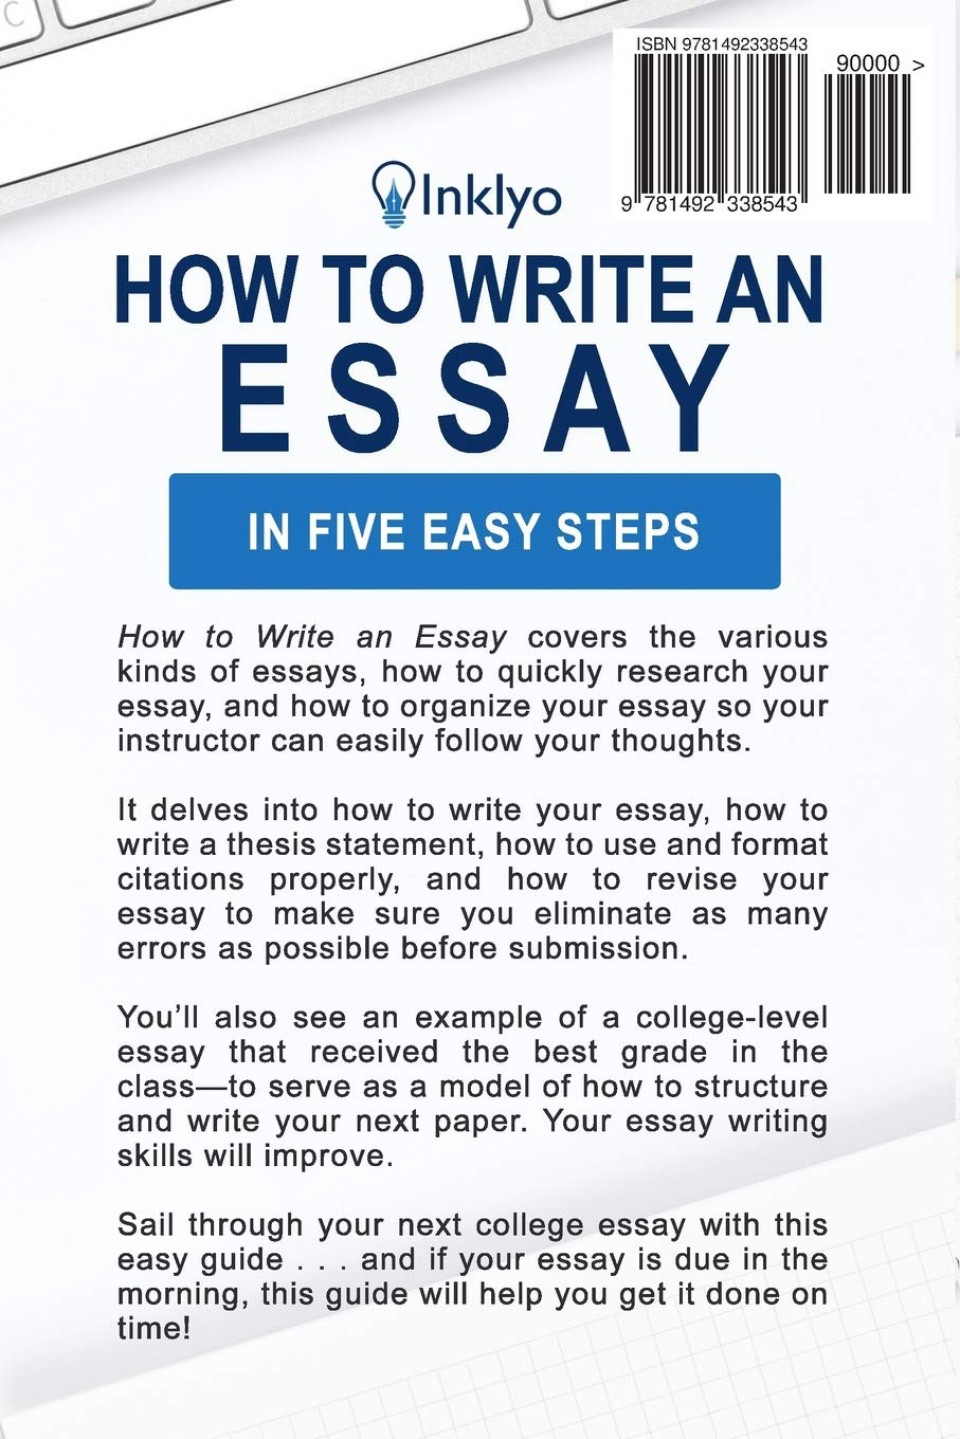 002 How To Write An Essay Example Shocking English Fast Title In Mla Format Conclusion 960